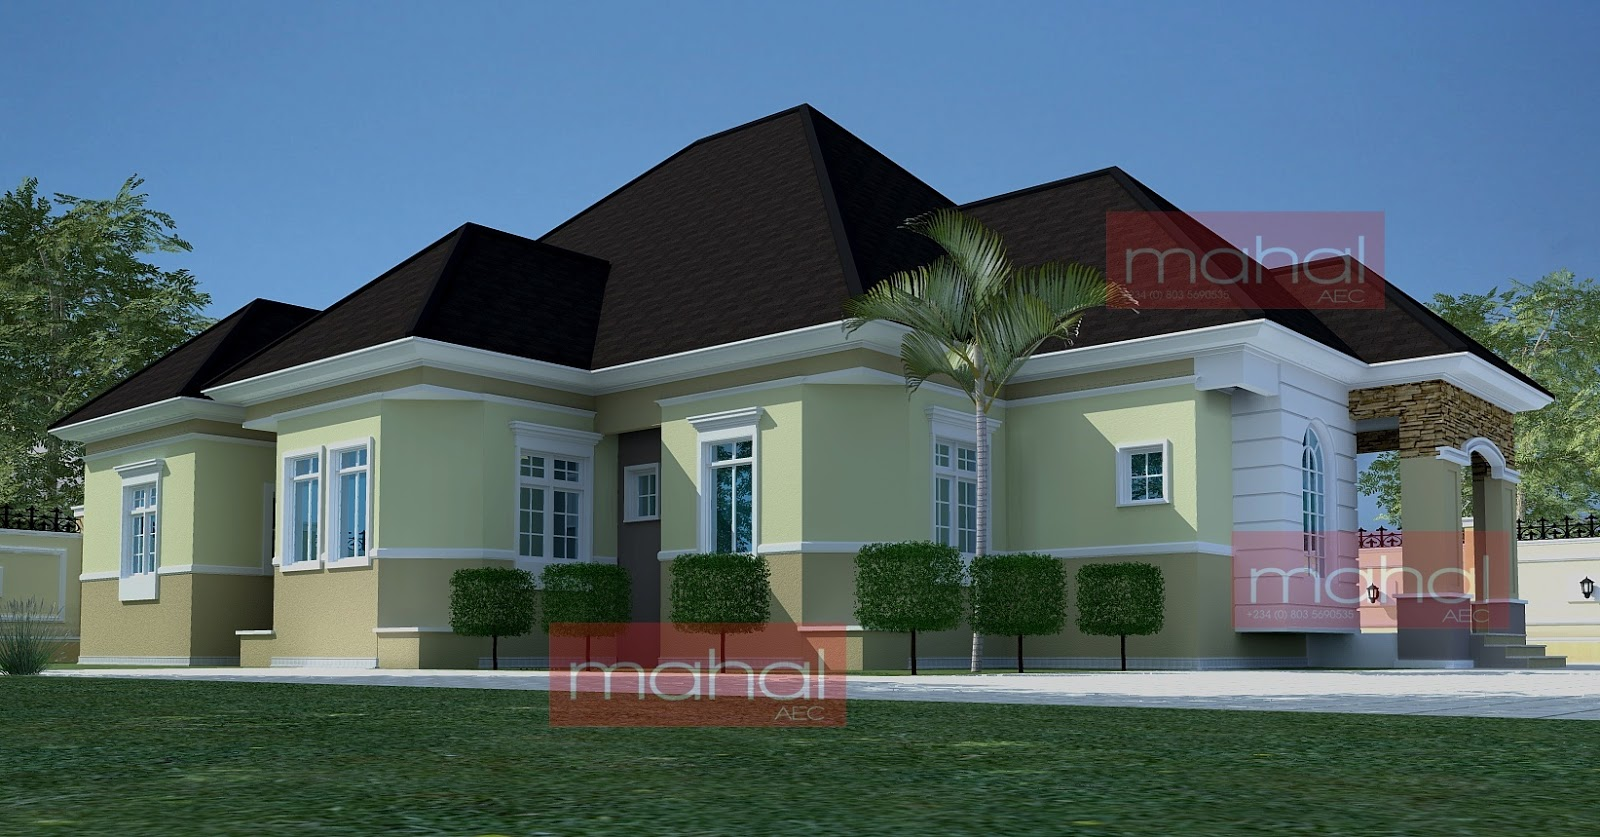 Duplex design and bungalows in nigeria joy studio design for Modern duplex house plans in nigeria